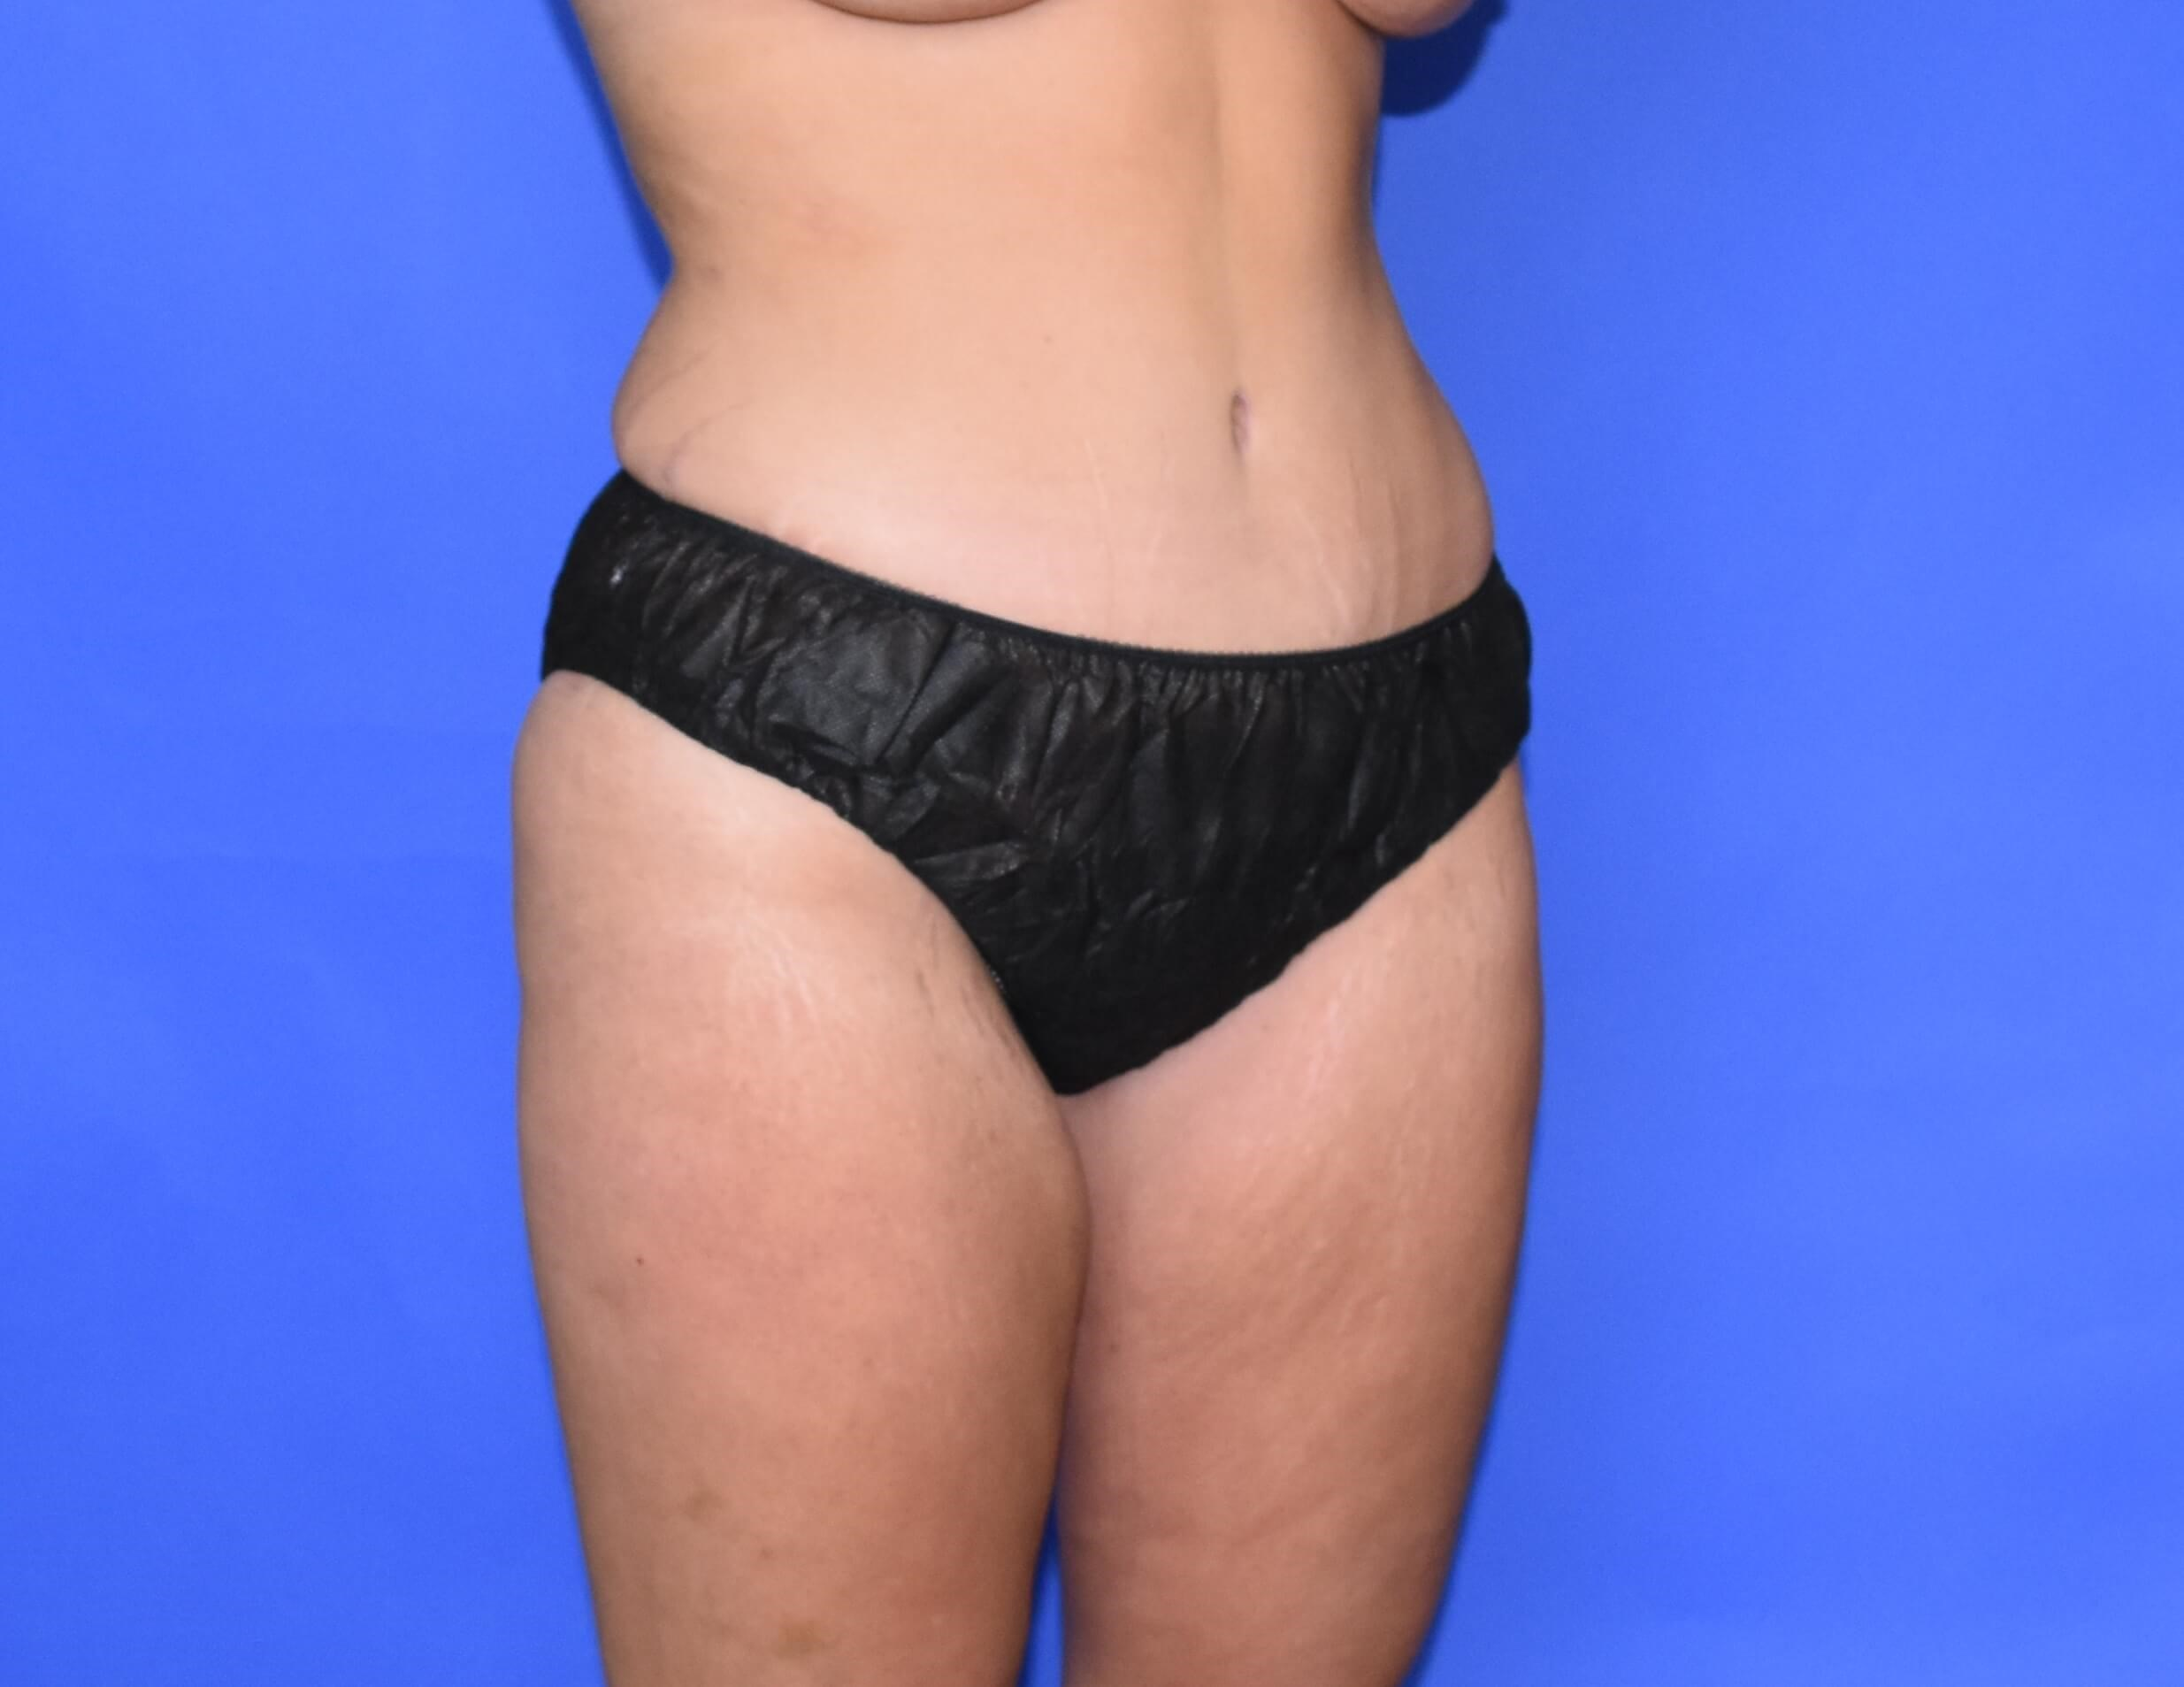 Abdominoplasty - Houston After